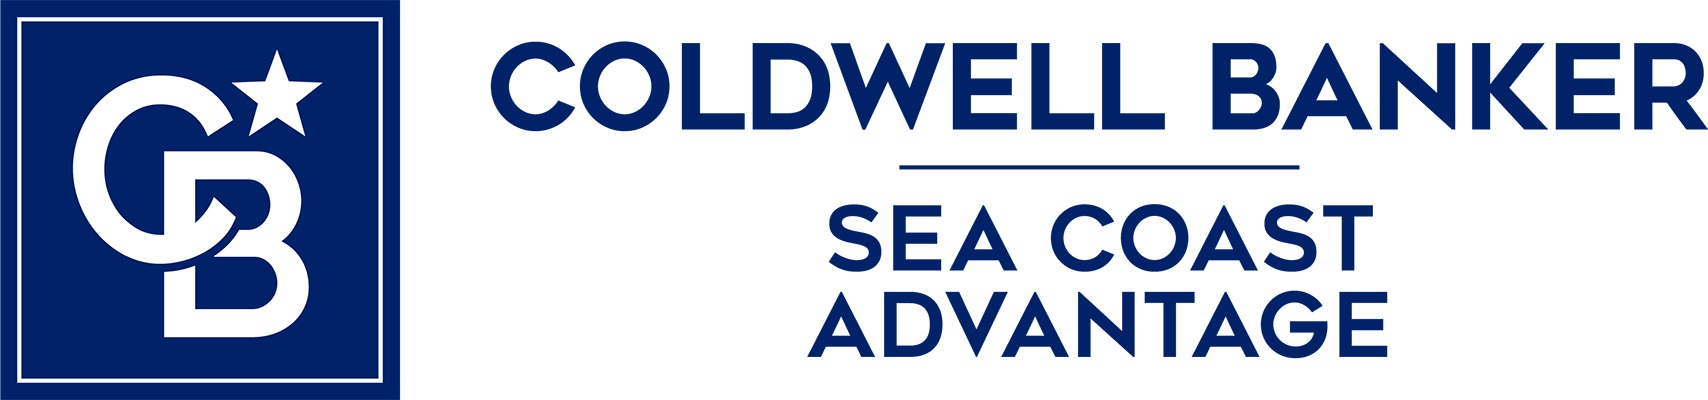 Eden Gilliam - Coldwell Banker Sea Coast Advantage Realty